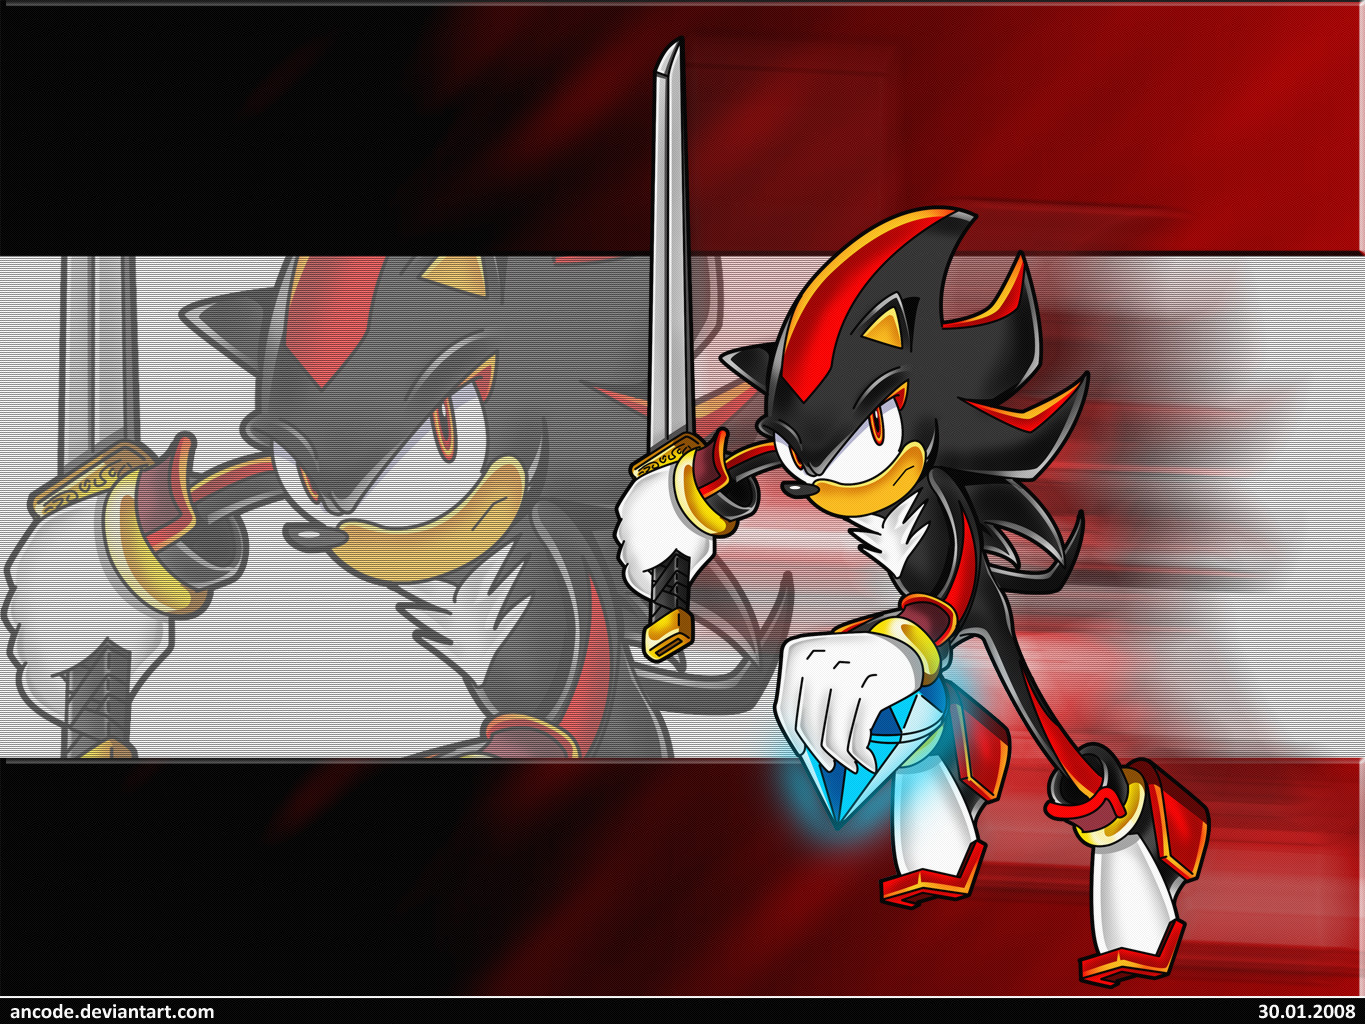 Shadow - Chaos and Sword by ancode on DeviantArt